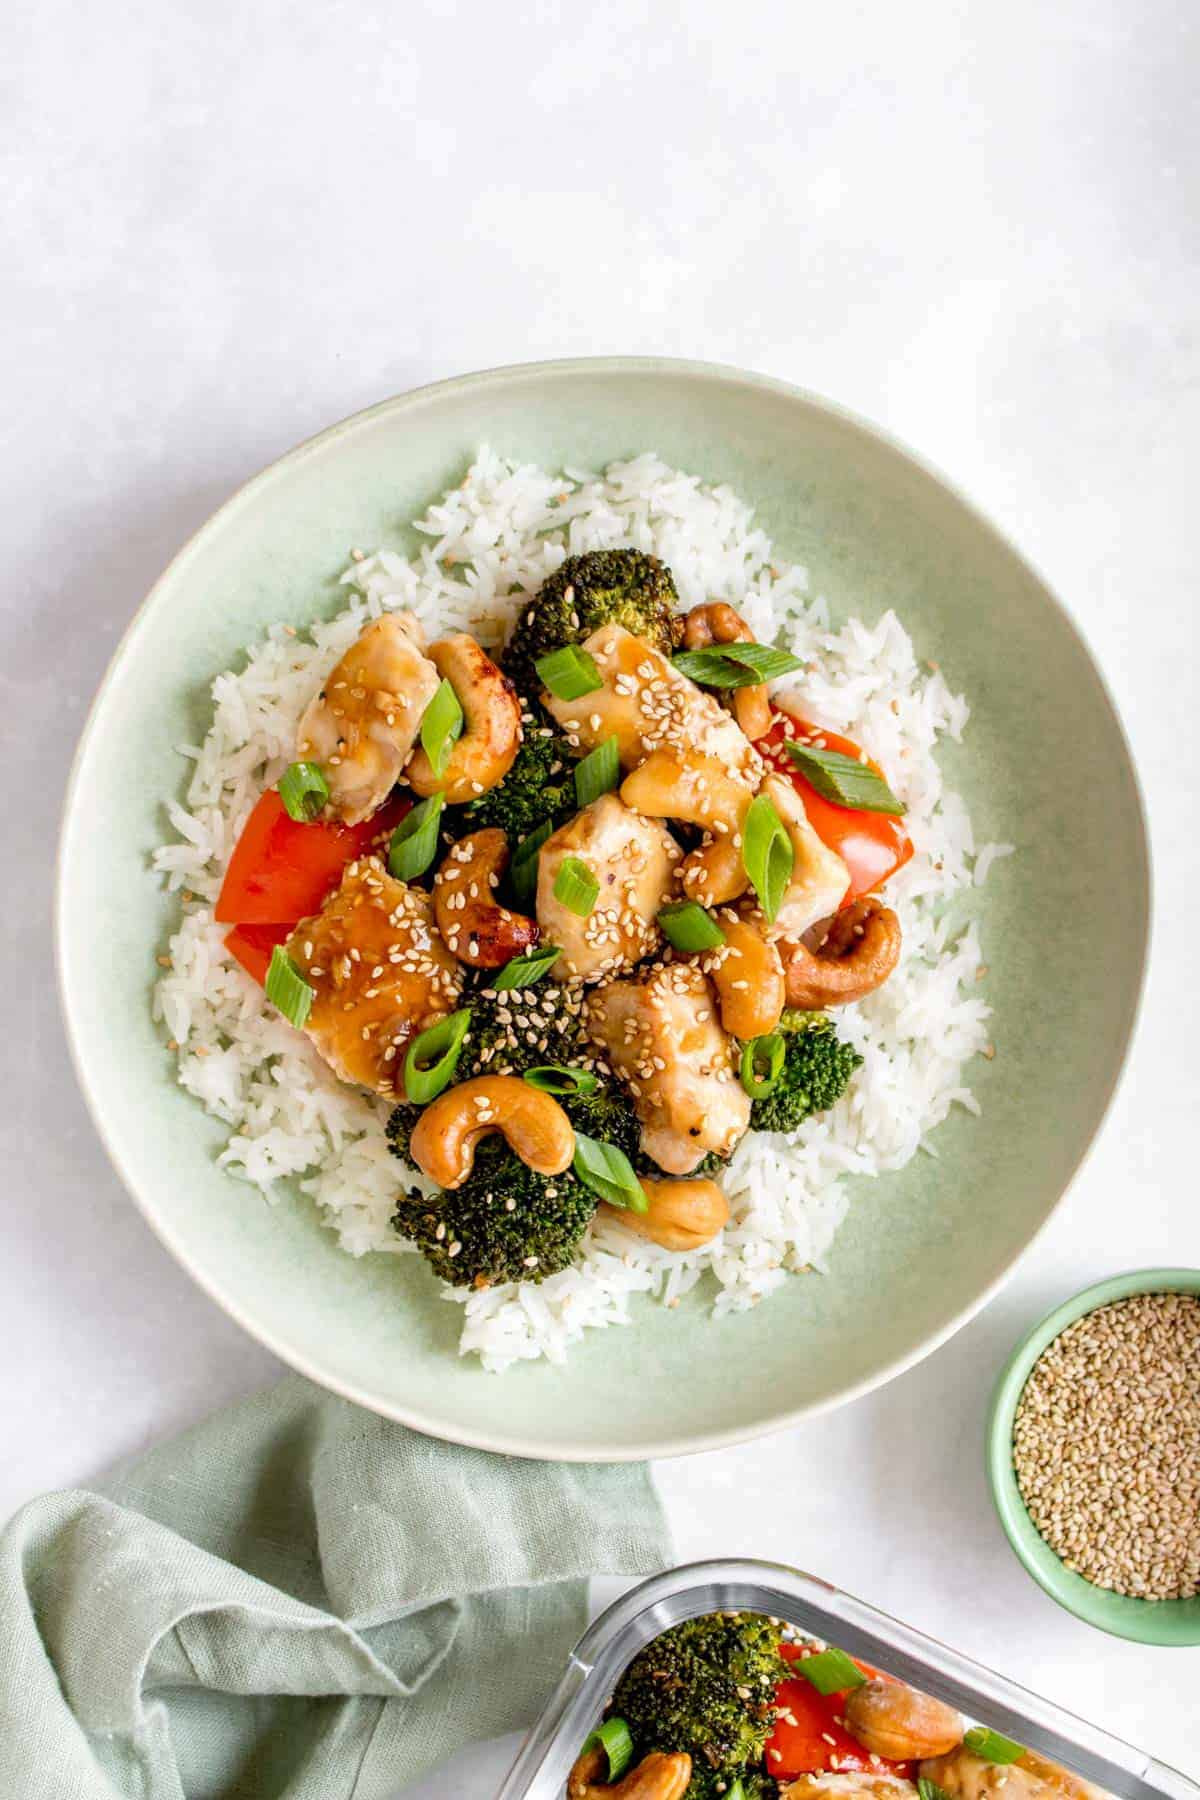 Sheet pan cashew chicken over a bed of rice in a green plate.